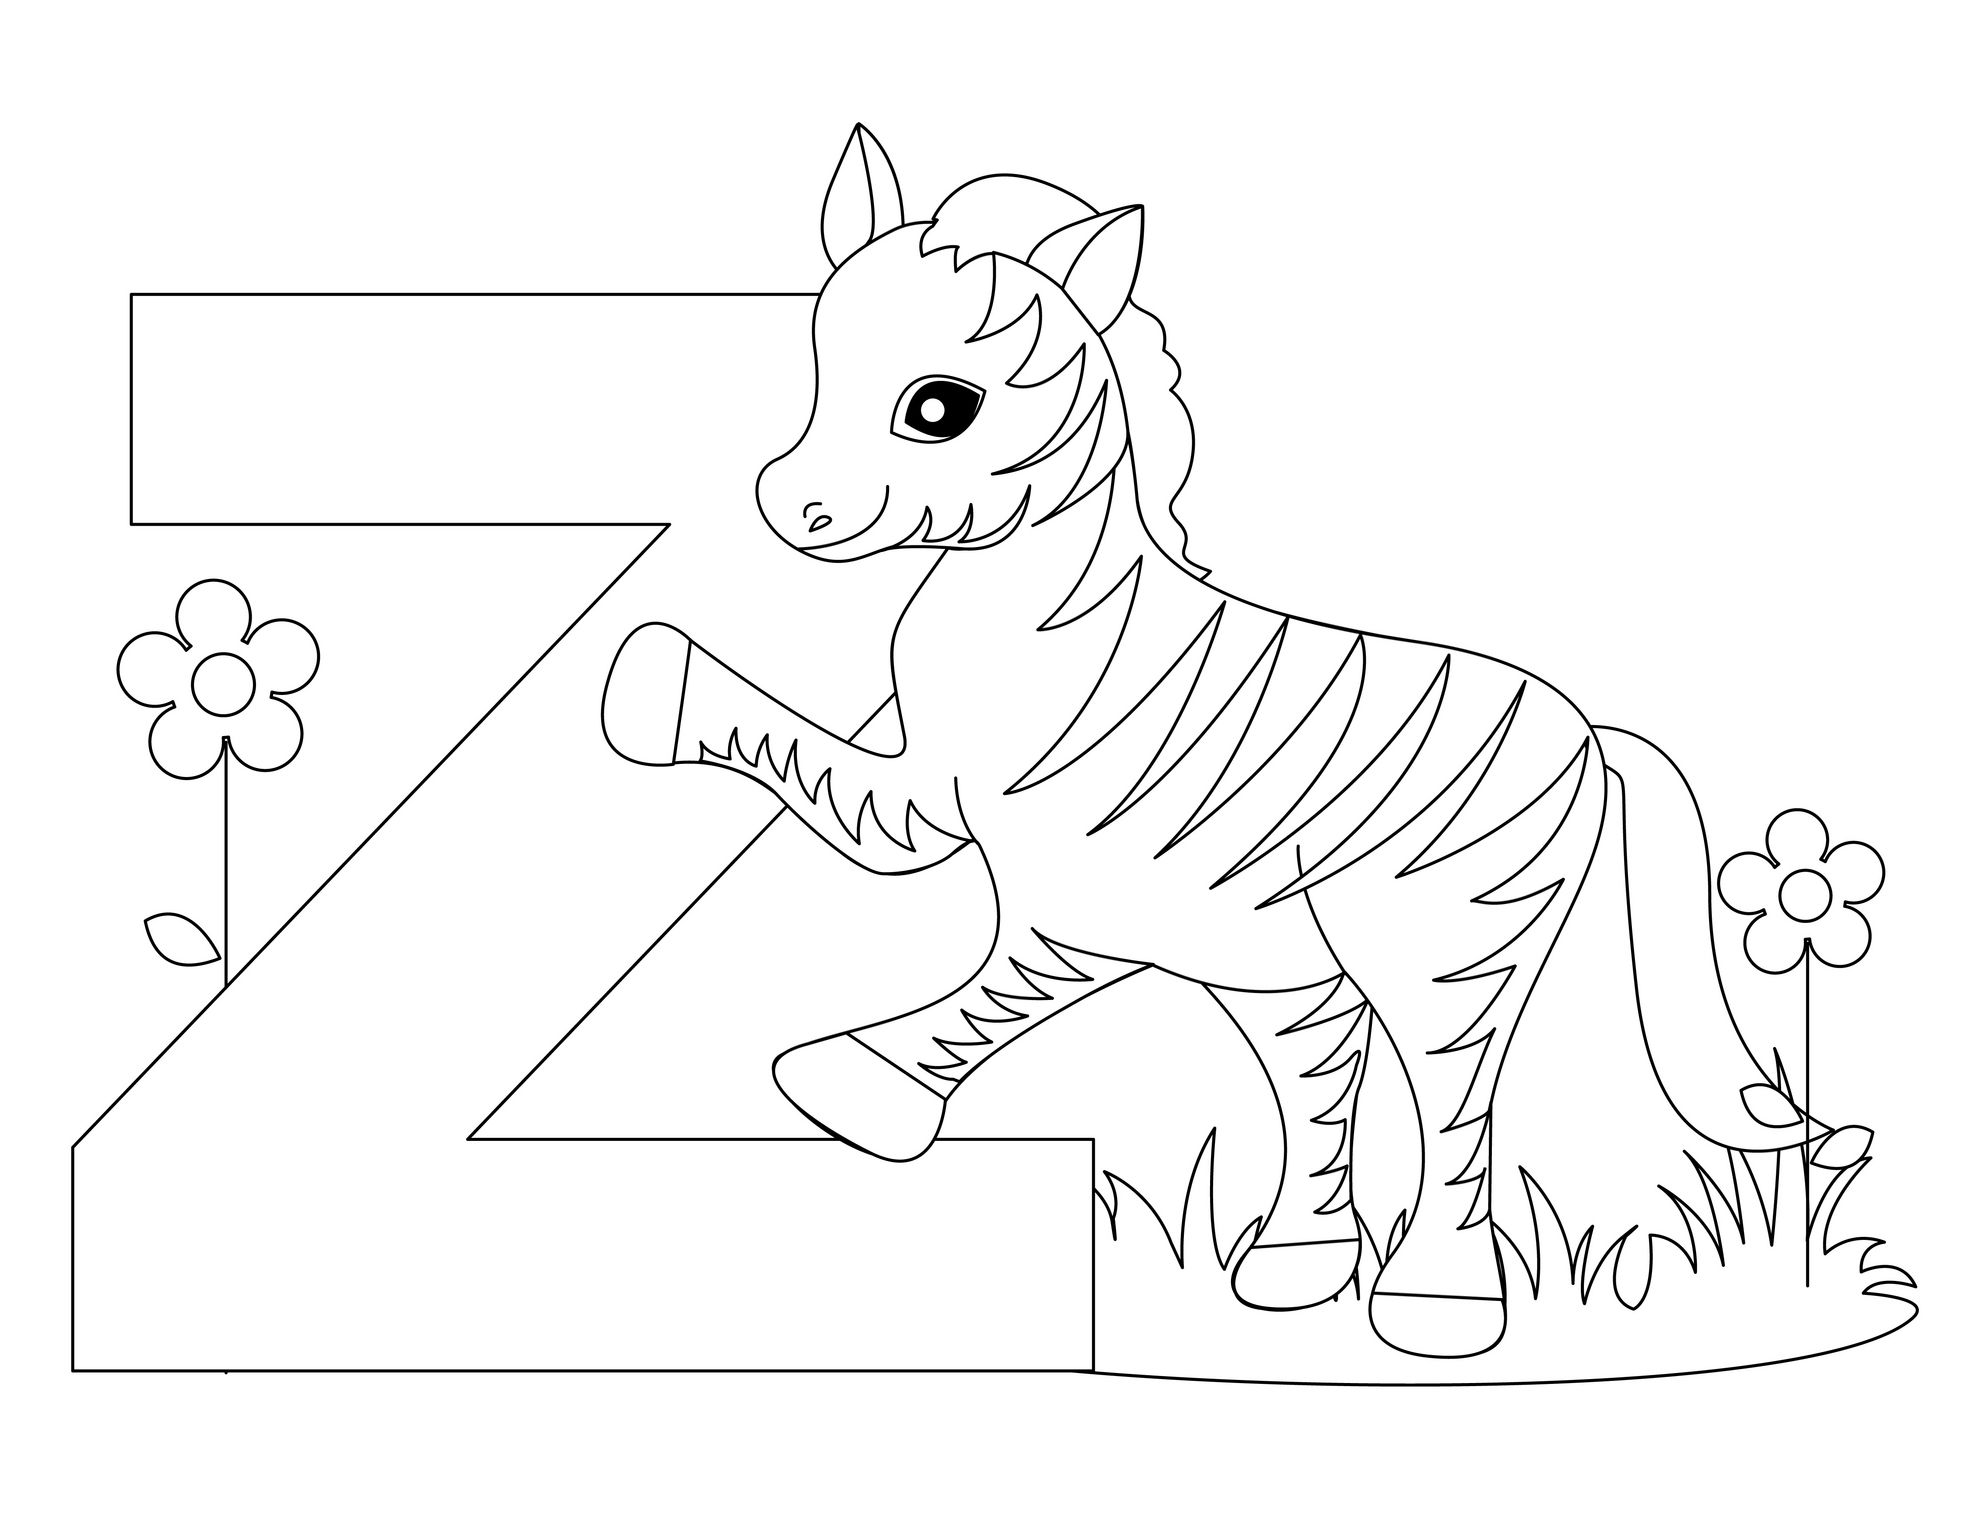 Animal Alphabet Letter Z for Zebra – Letter Z Worksheet